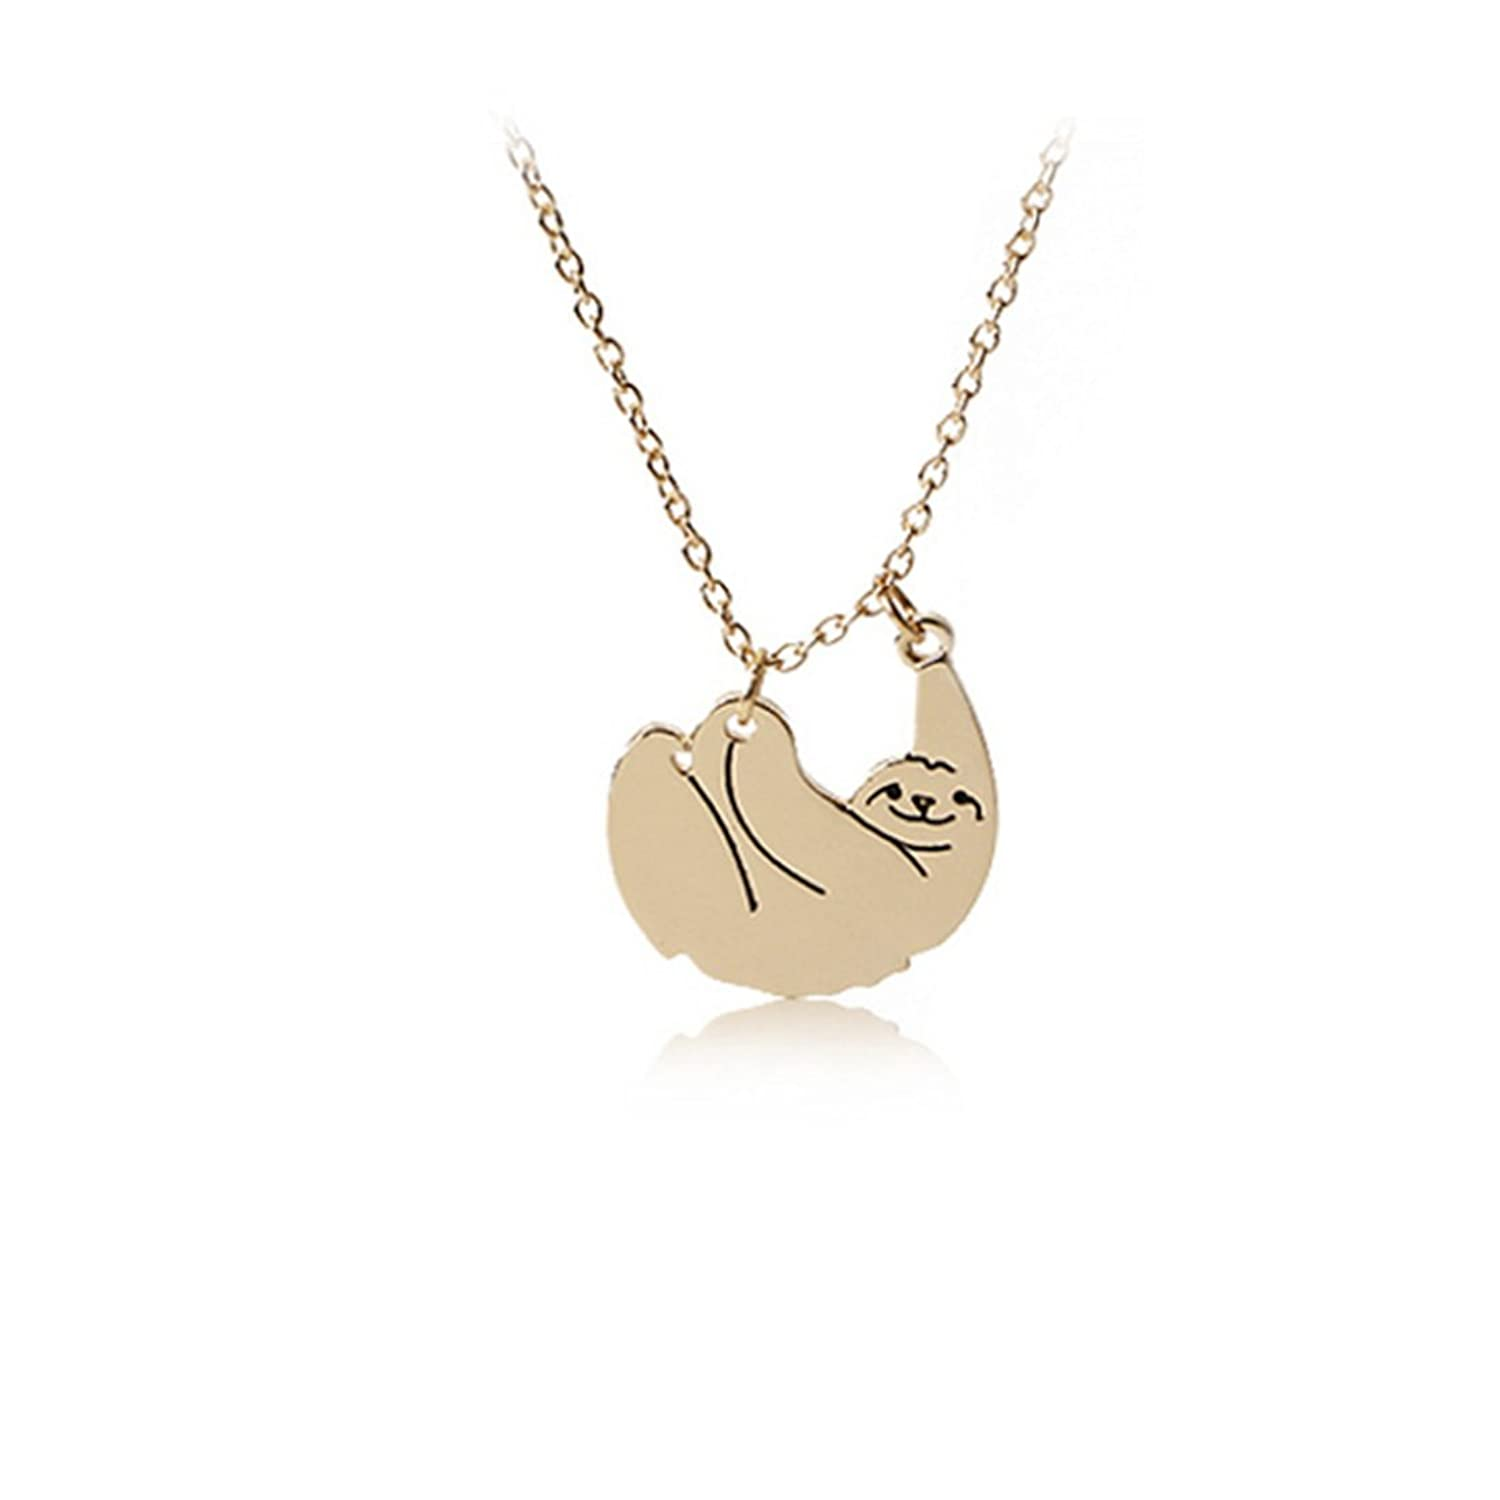 multi sloth large stephen webster holiday moda operandi pendant by